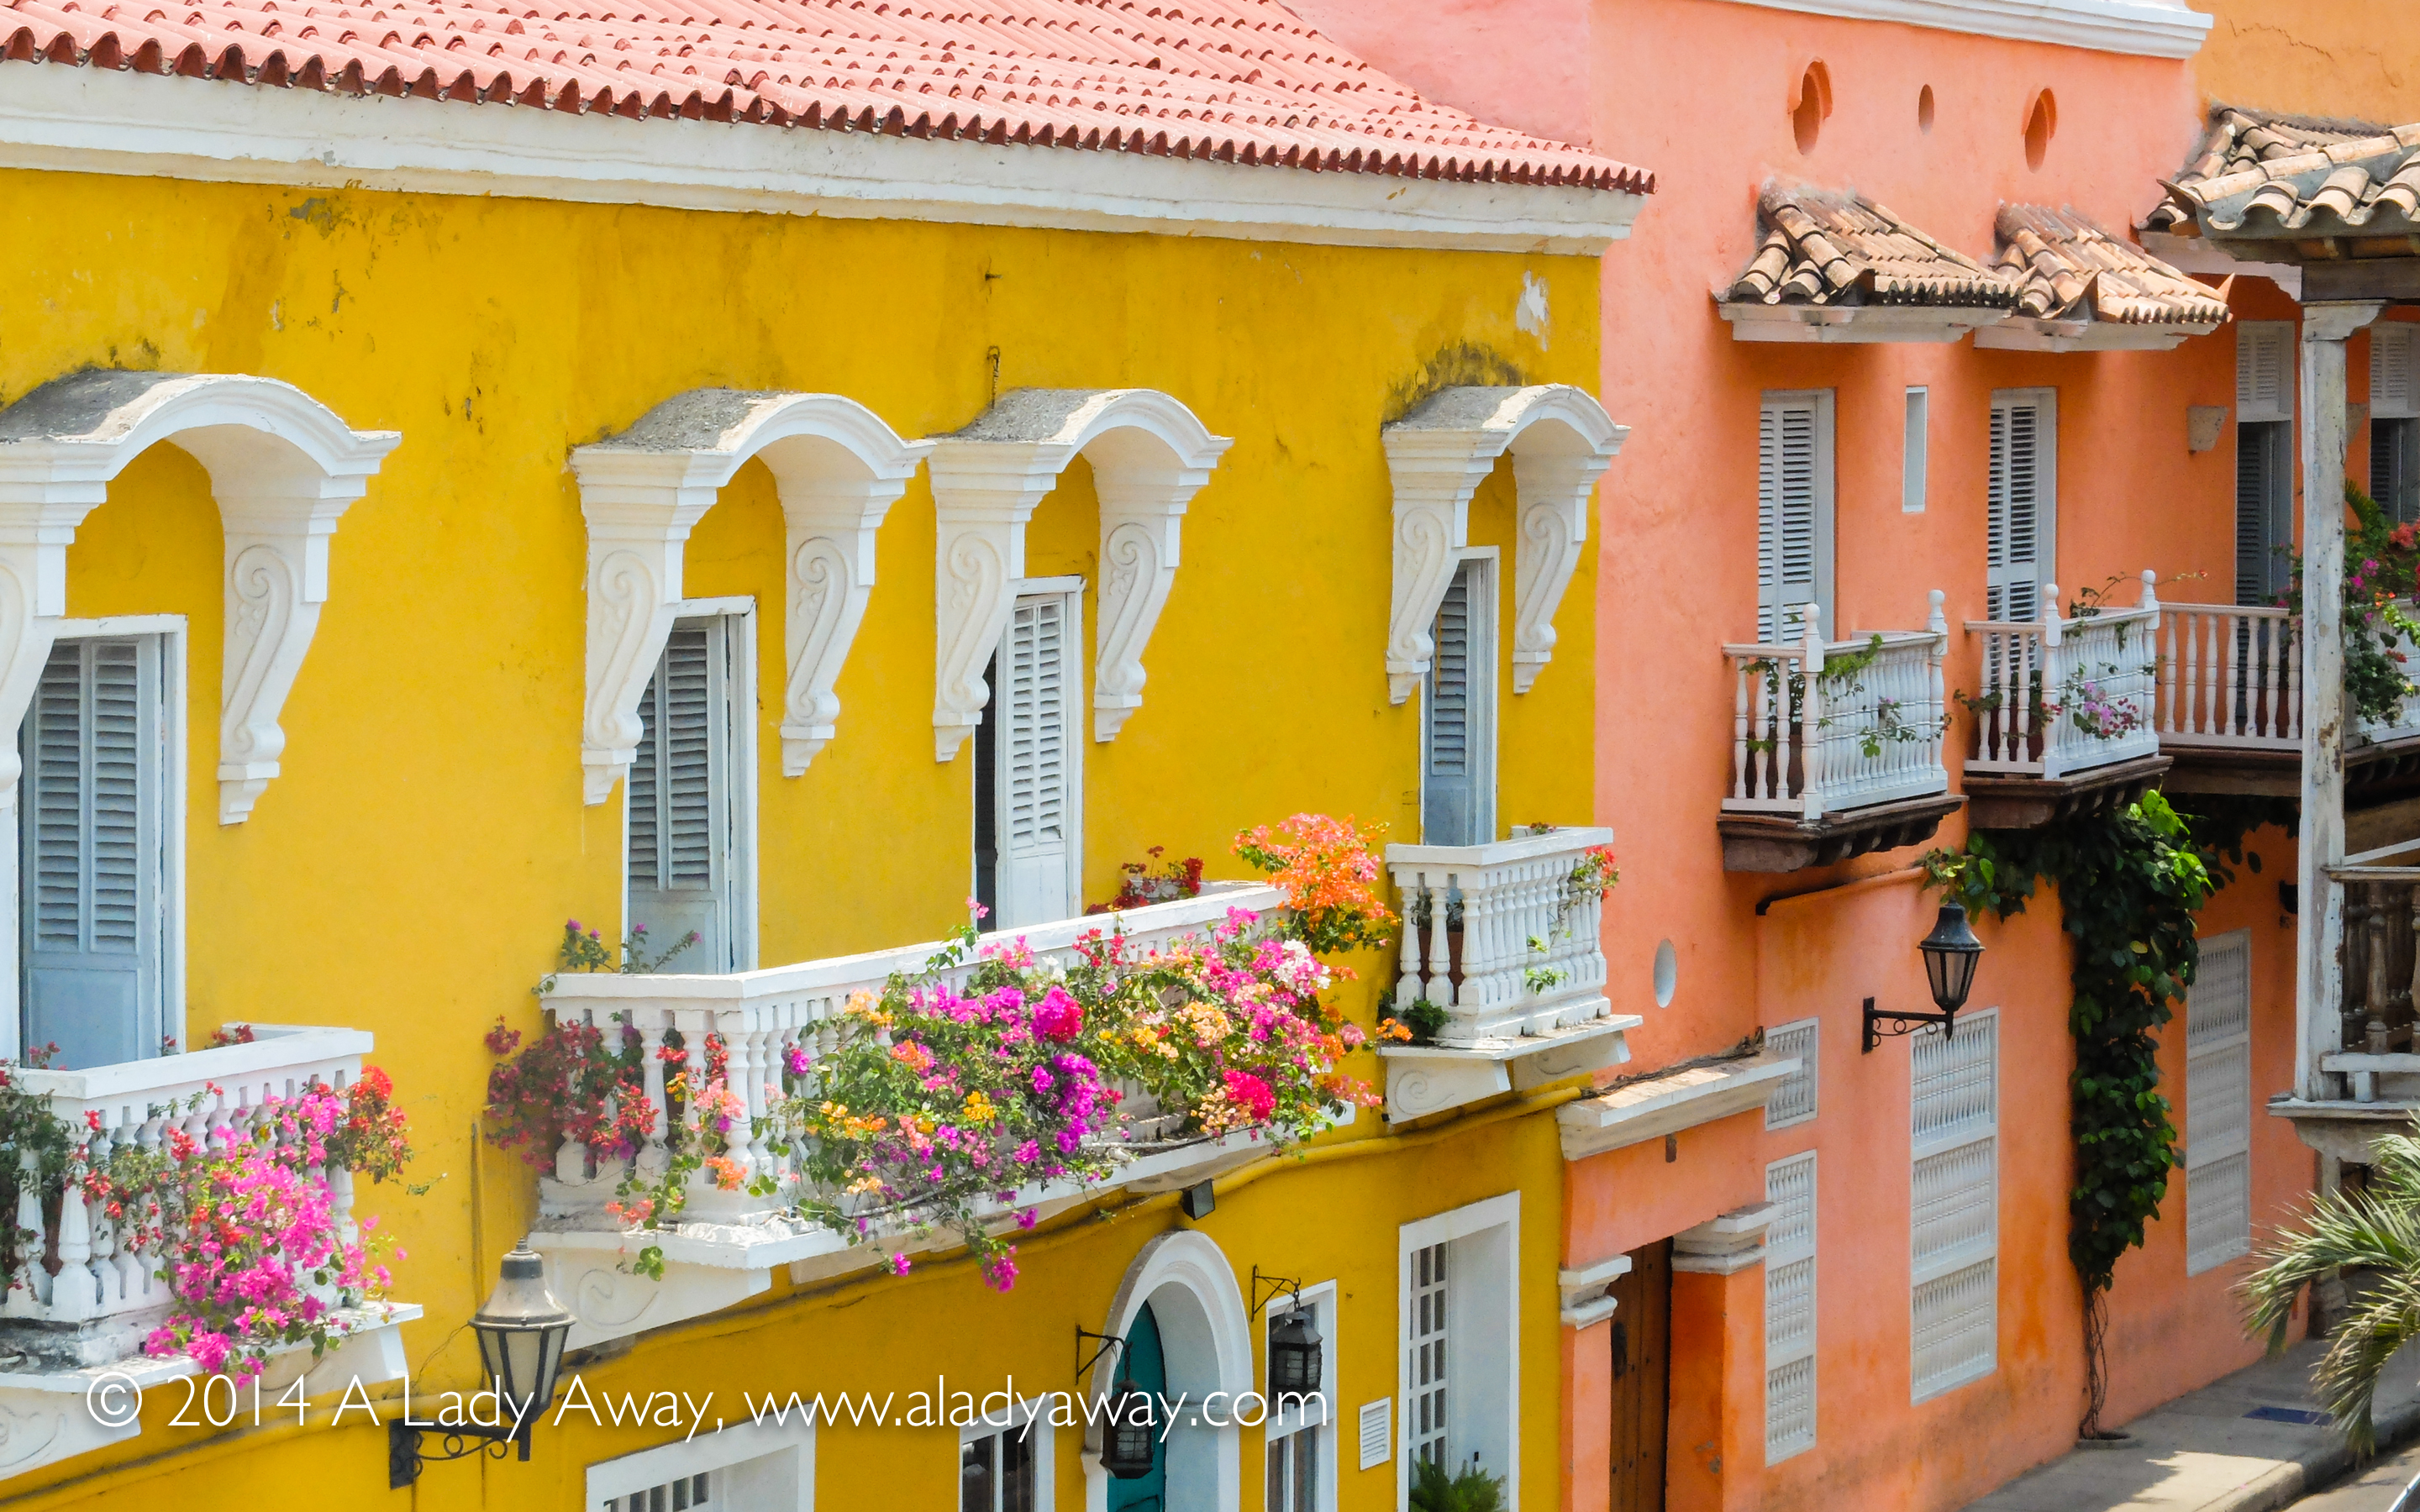 A walk around Cartagena's walled city